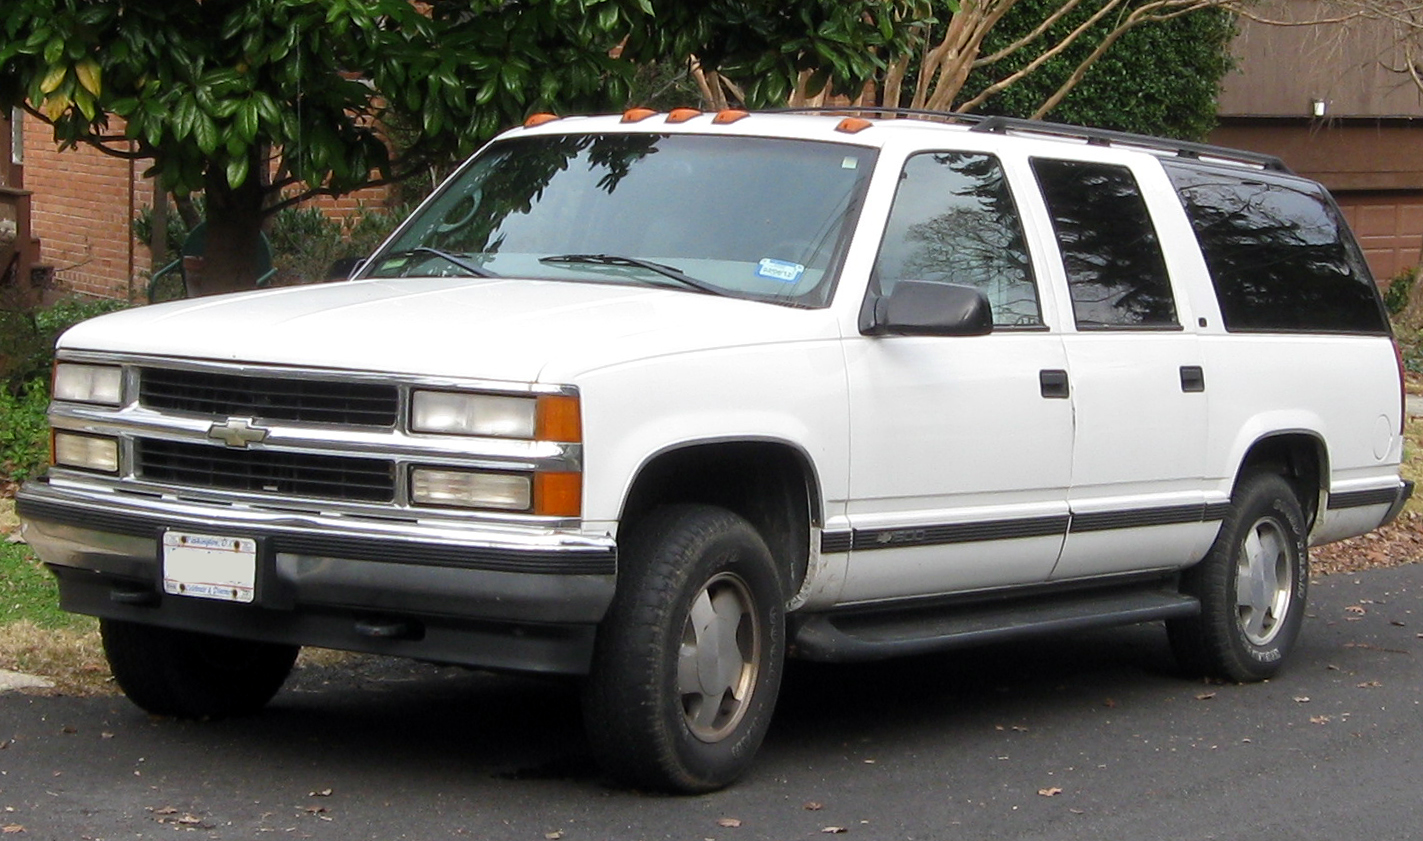 2000 Chevrolet Suburban Information And Photos Zombiedrive 2004 Chevy 2500hd 6 1 Engine Aveo Diagram 8